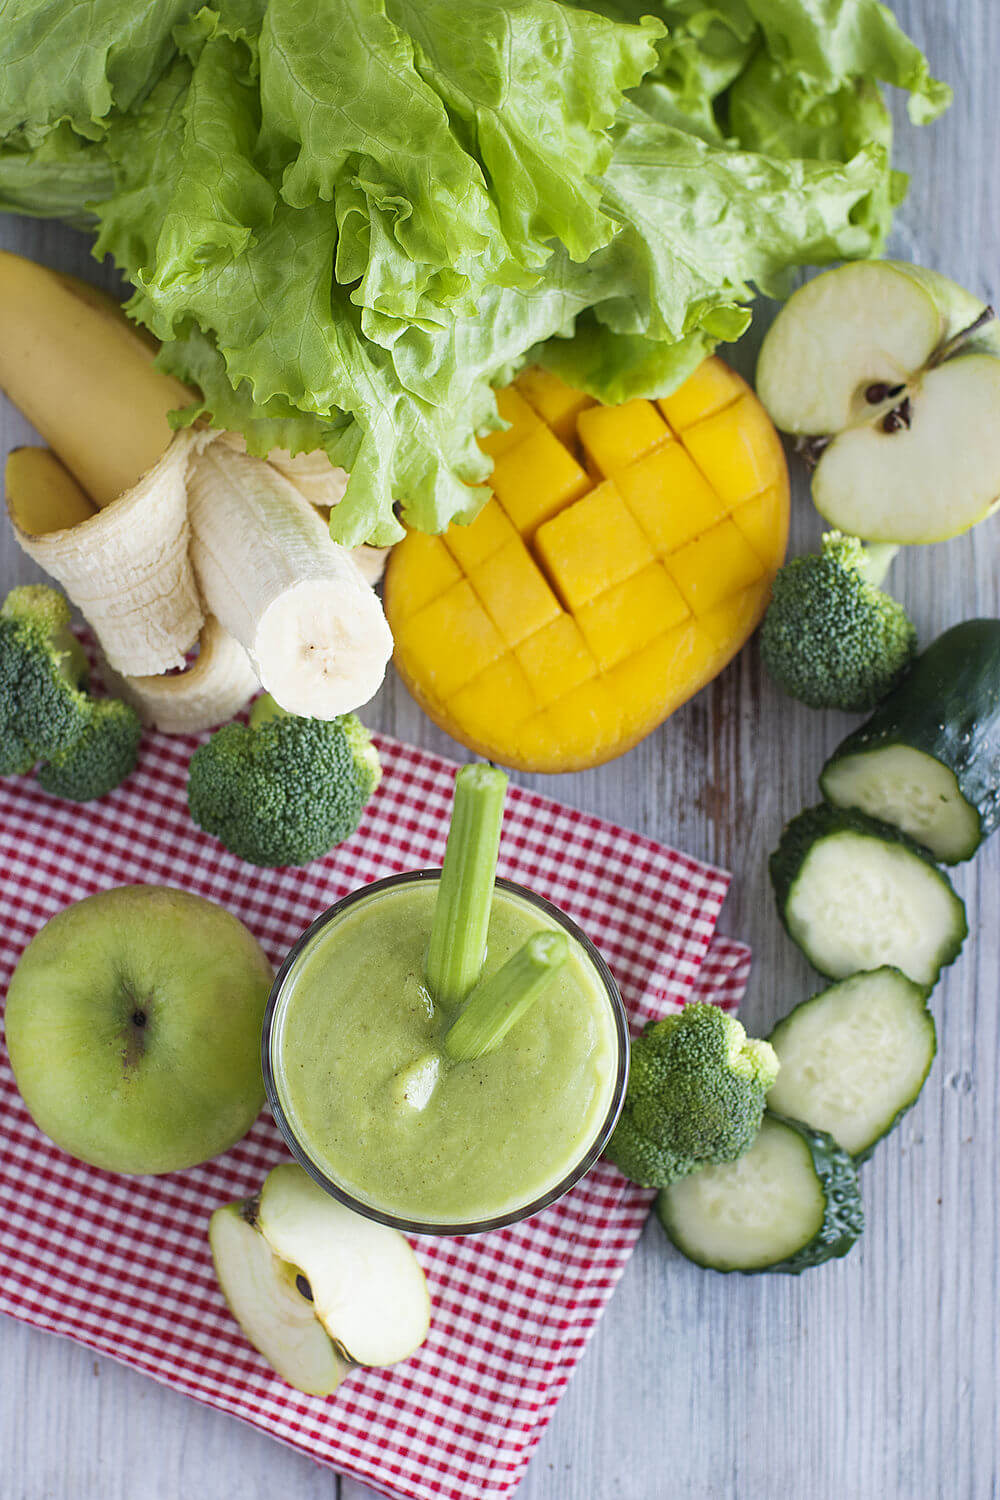 Cucumber, water, lettuce, banana, mango, celery, broccoli and green apple smoothie